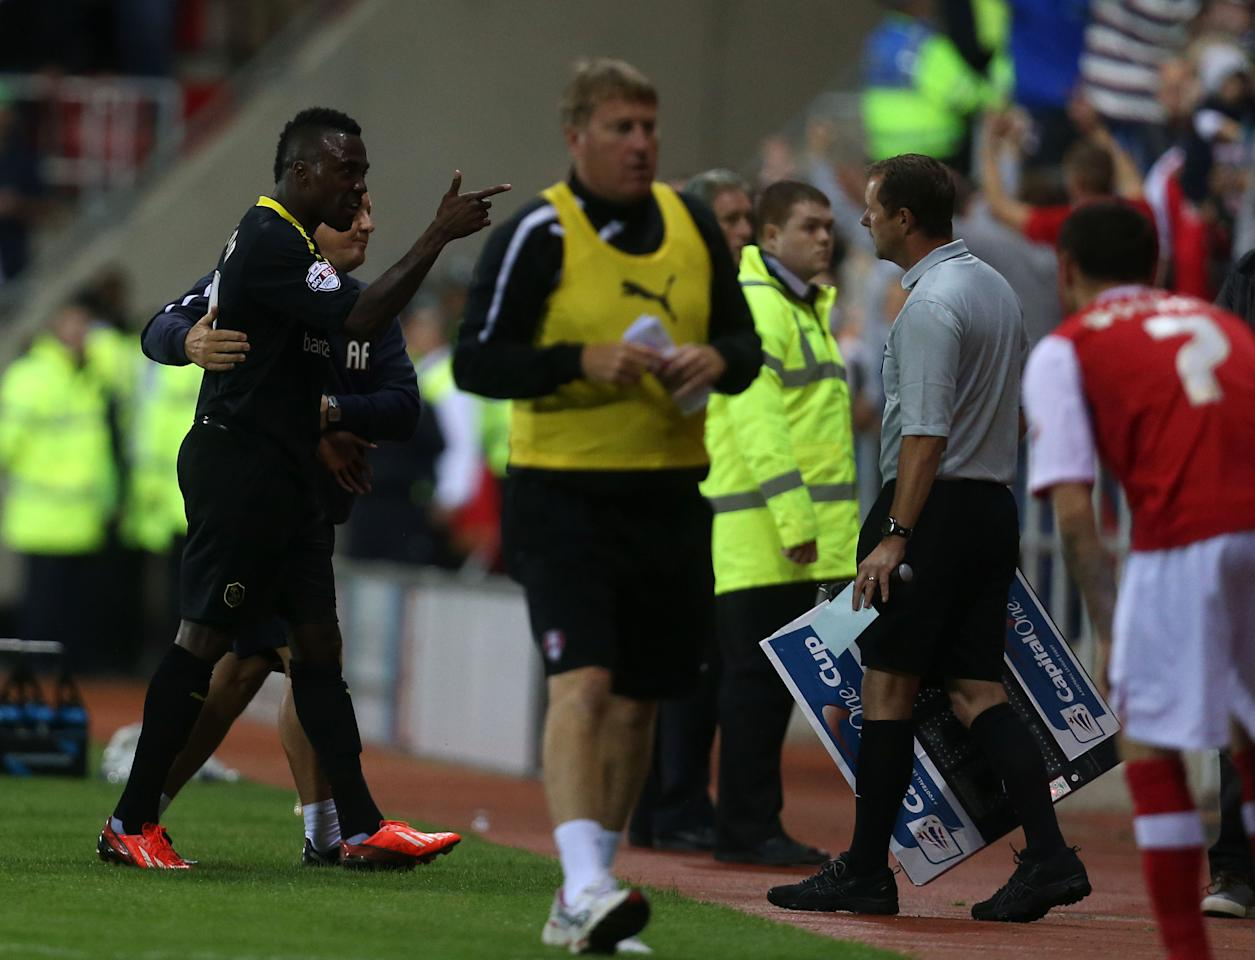 Sheffield Wednesday's Jermaine Johnson is sent off after the Referee, D Drysdale consulted with the fourth official N Murphy during the Capital One Cup, First Round match at the New York Stadium, Rotherham.